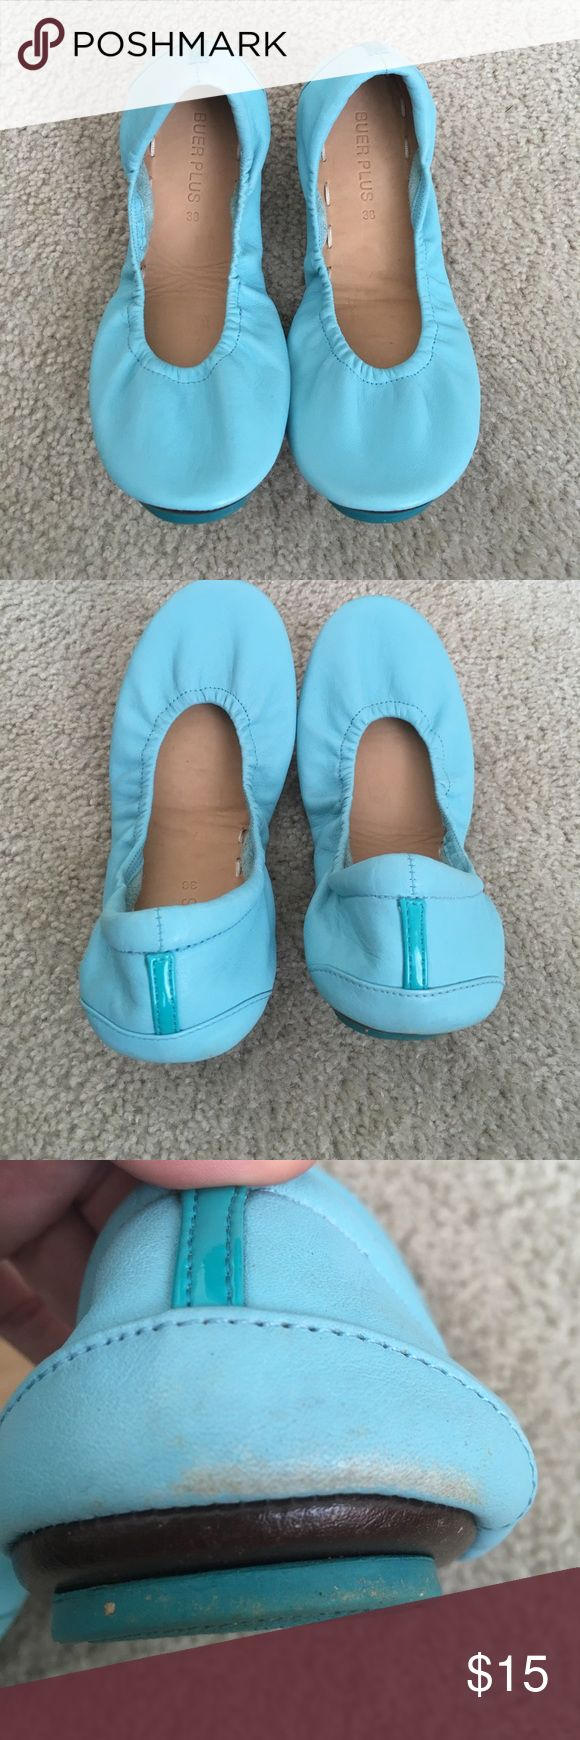 Knock-off Tieks in beautiful blue Great color blue and only worn once. Just too tight after pregnancy. Run a bit small (I recommend for someone who is a 7.5). Some color rubbed off on the back (see last picture). buer plus Shoes Flats & Loafers